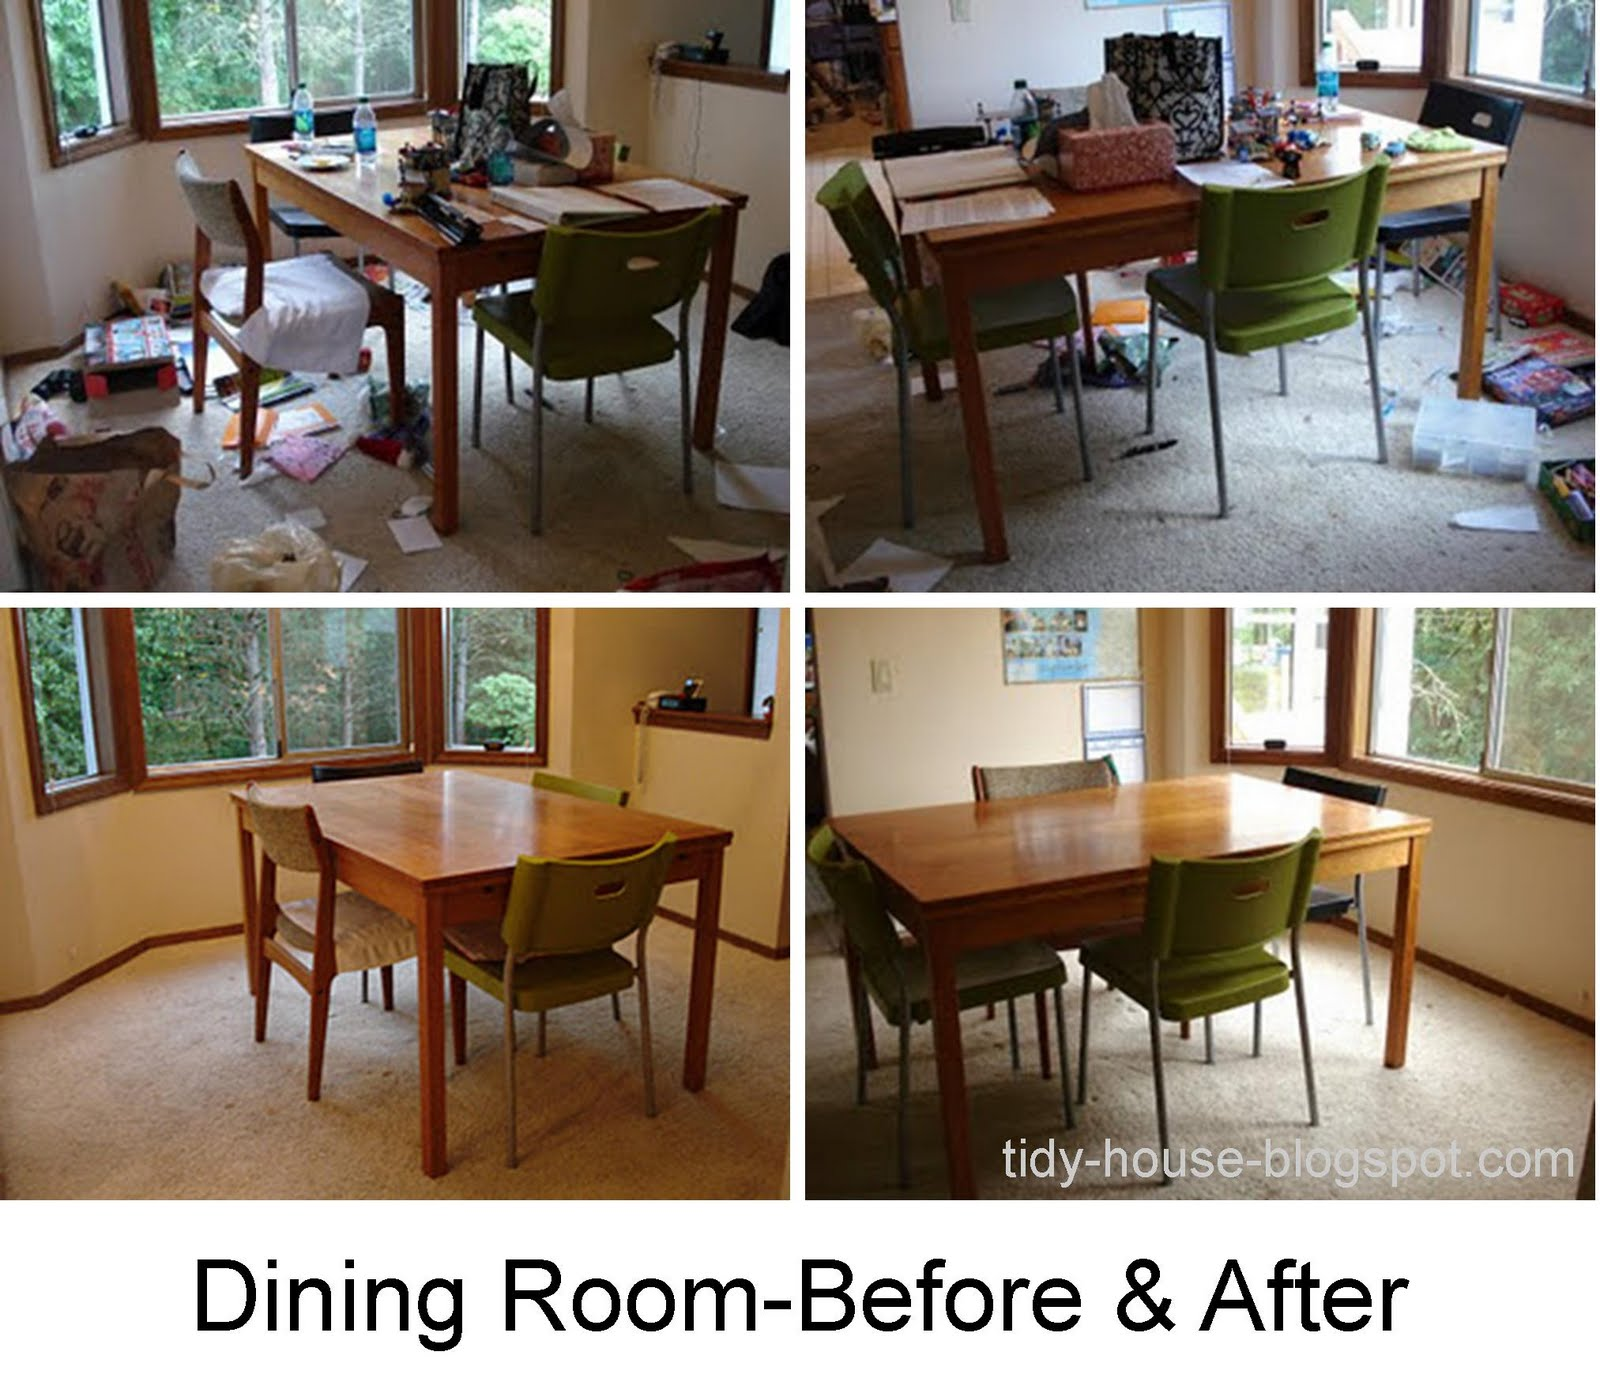 Tidy House: Final Dining Room-Before And After